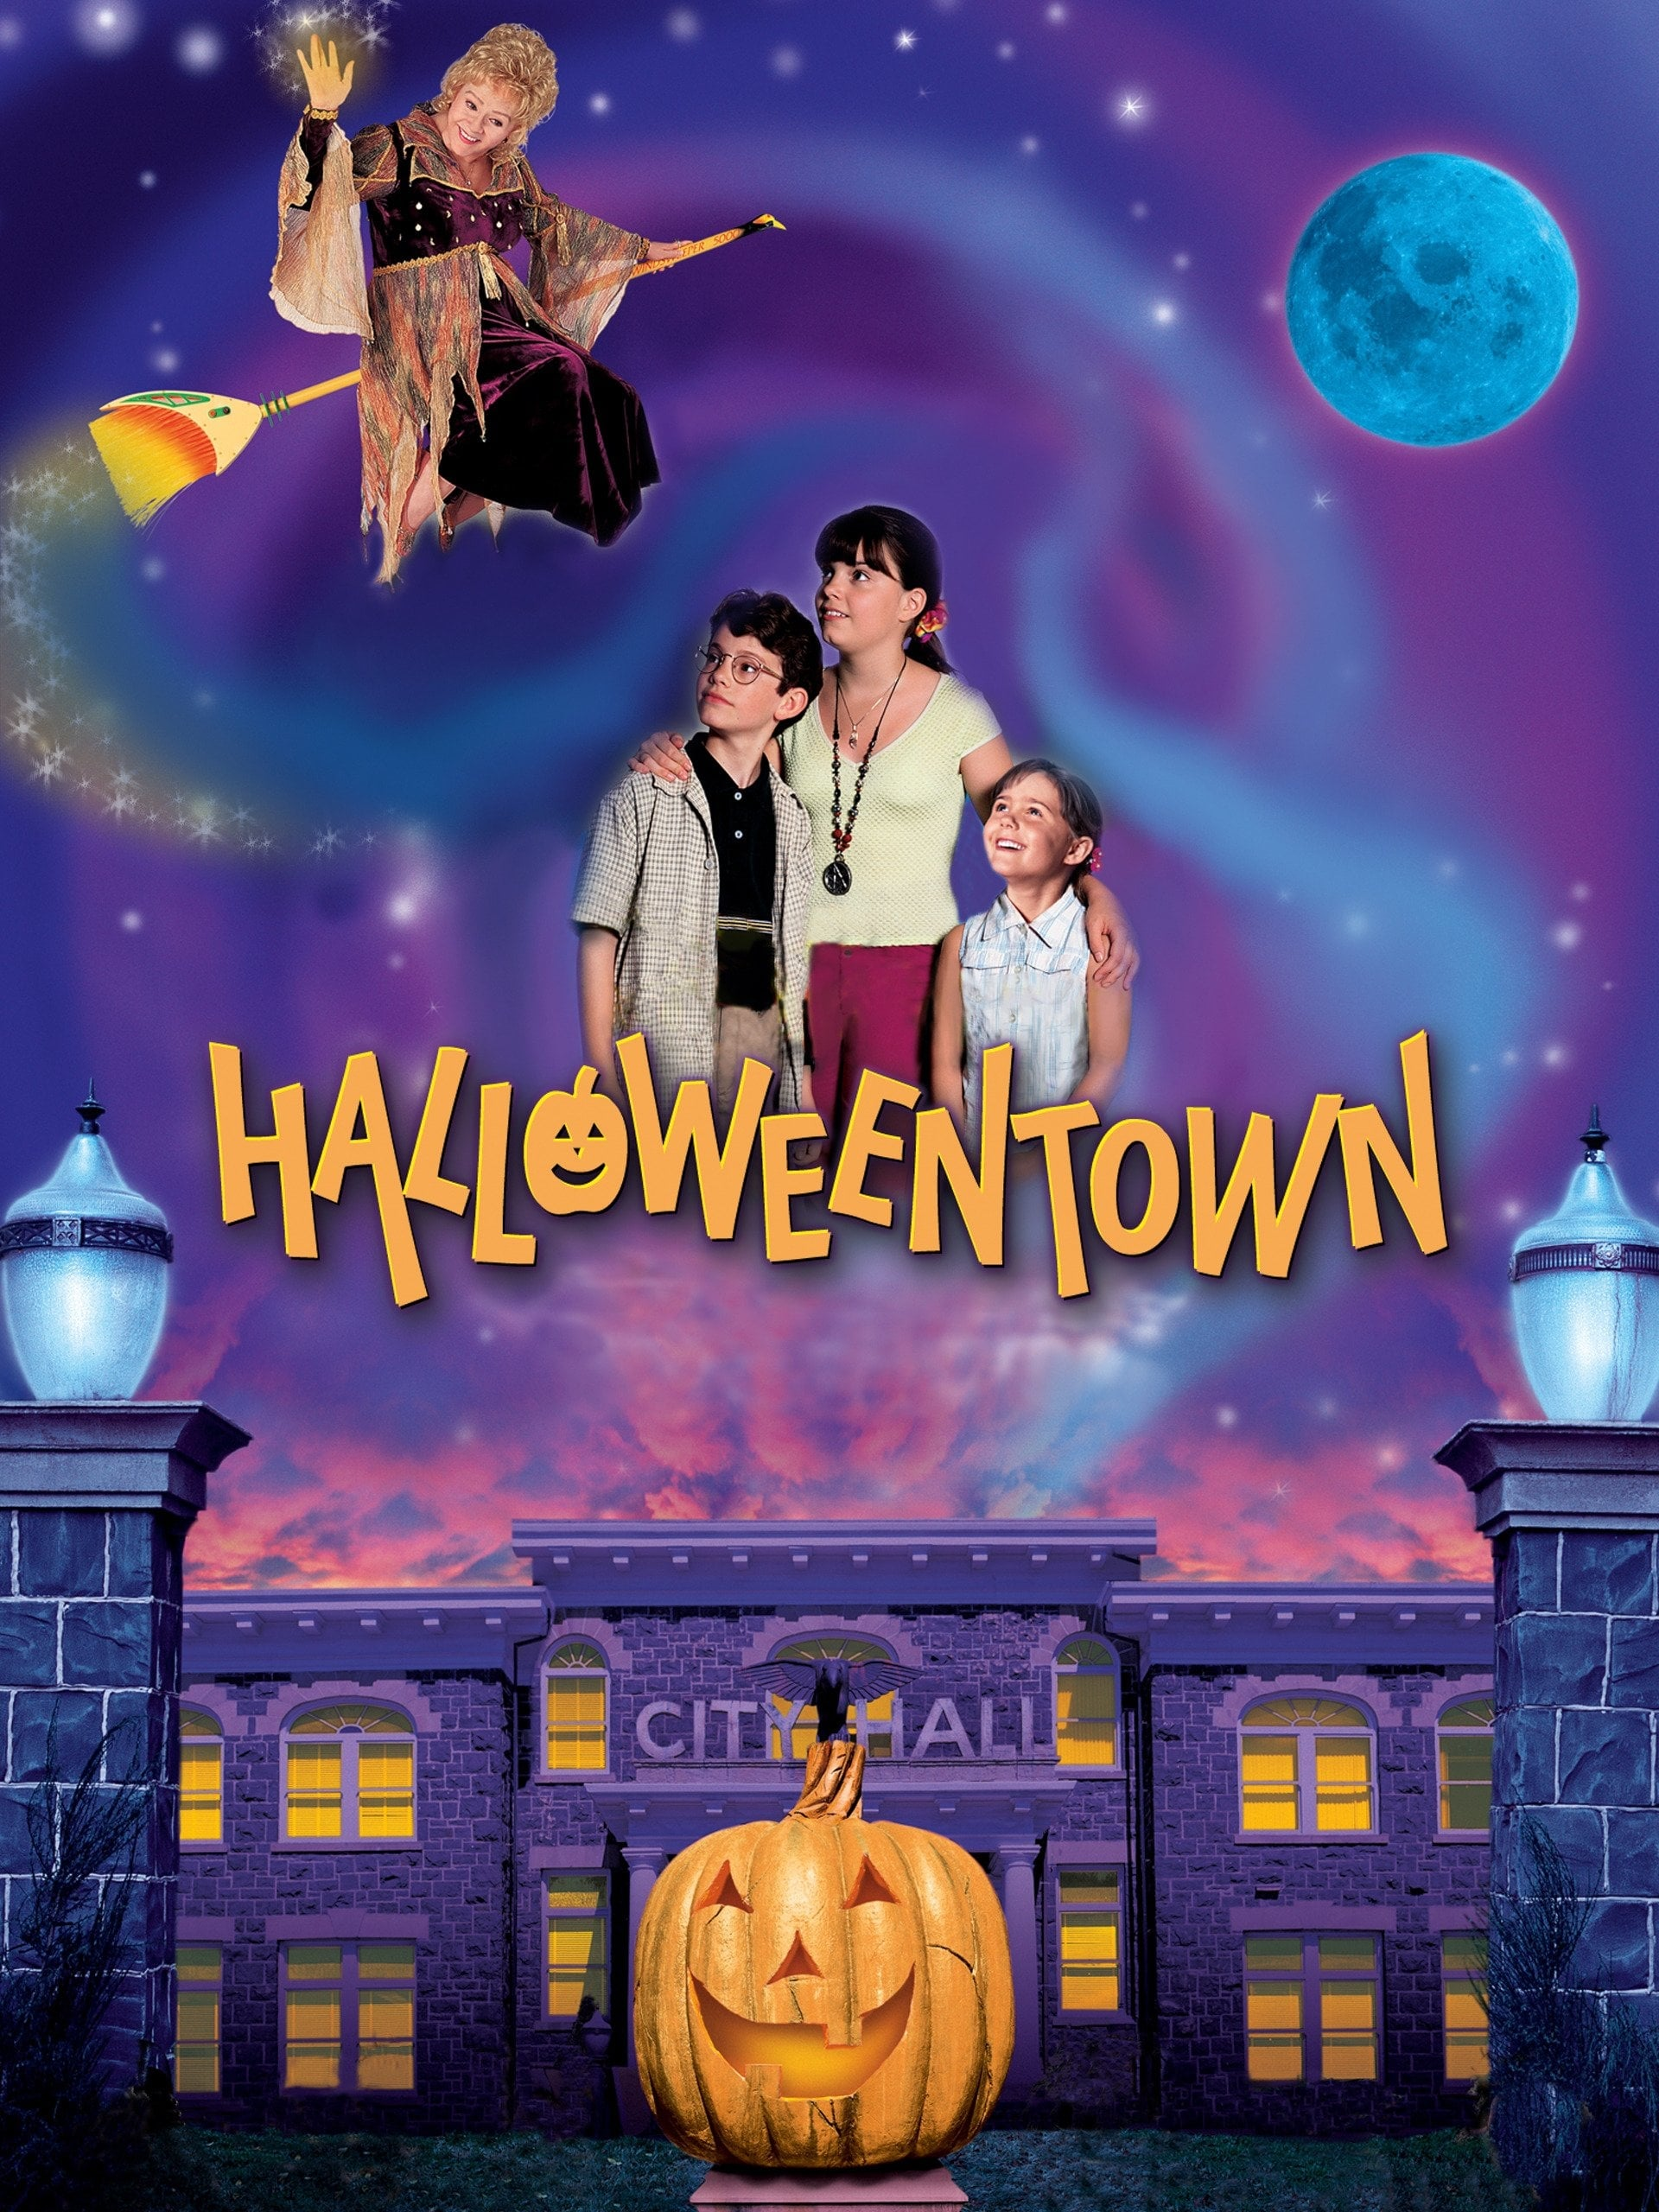 Halloweentown